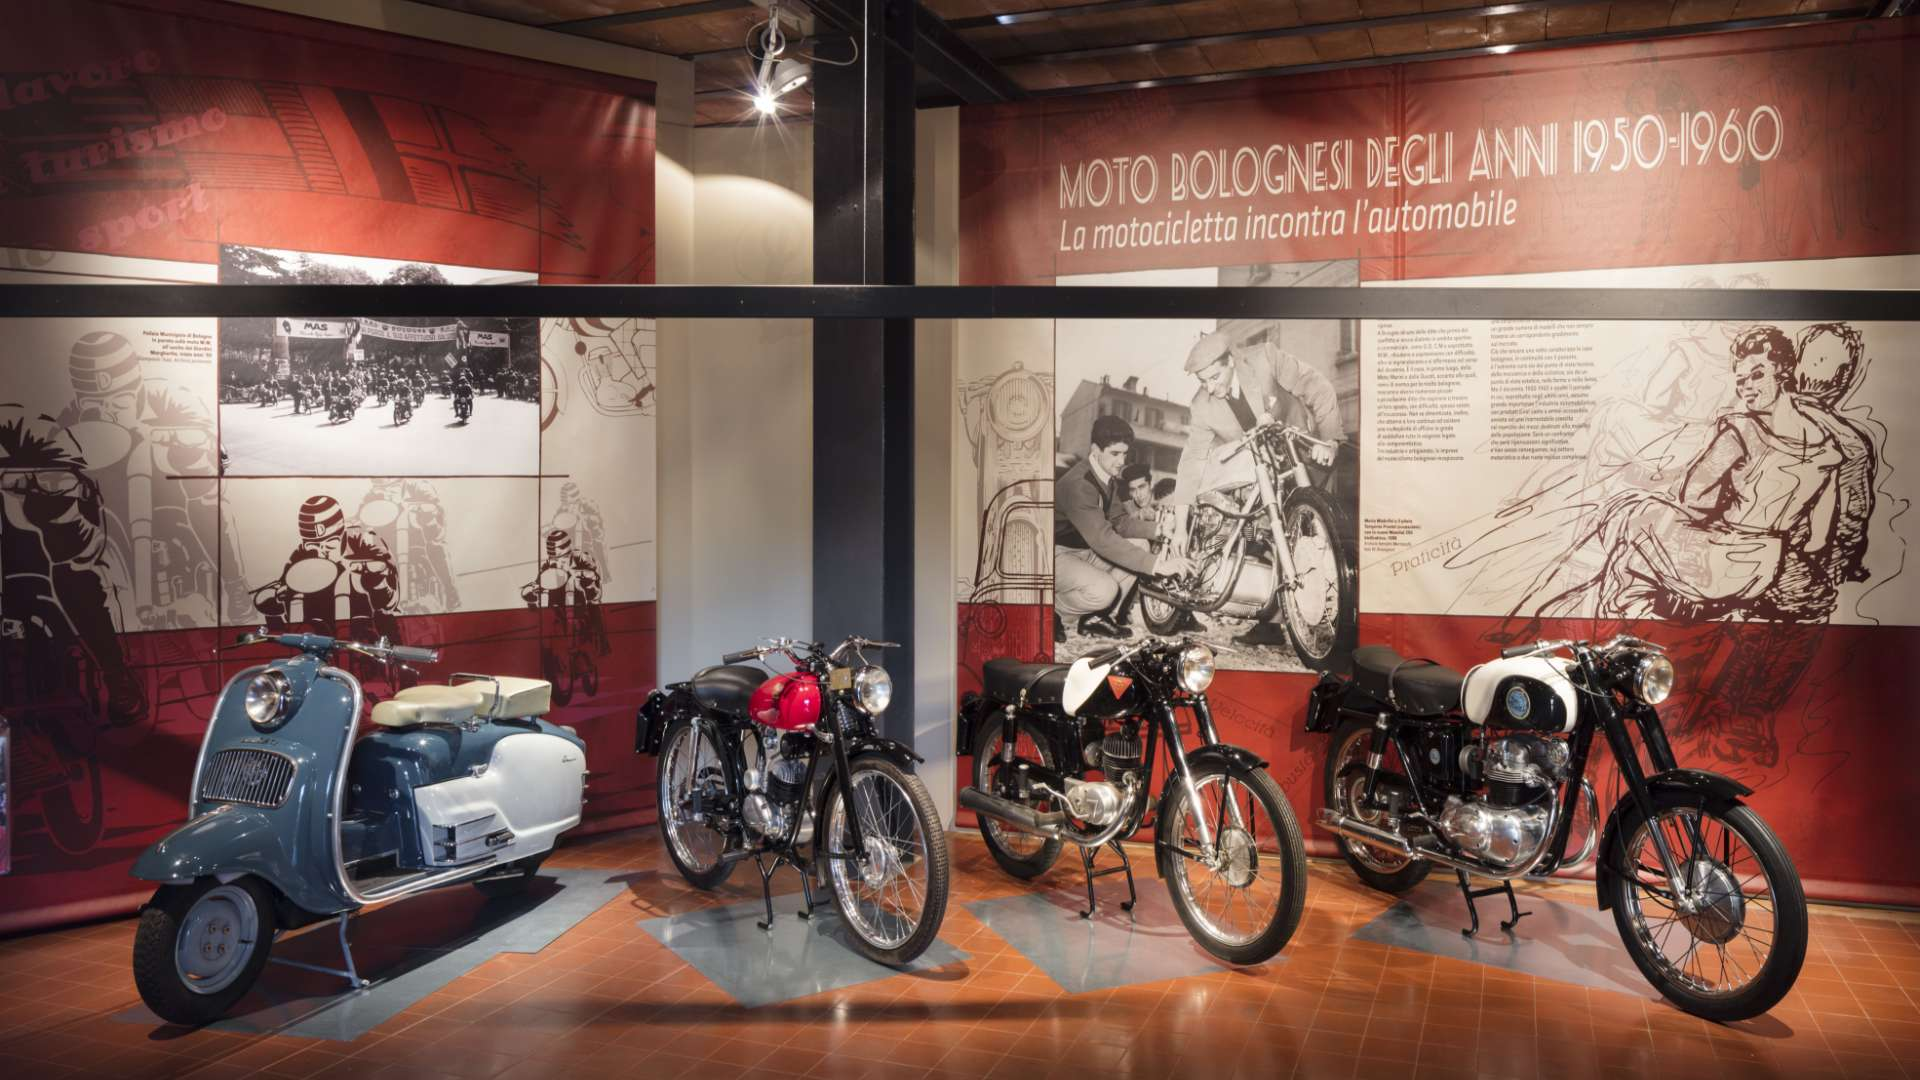 Moto bolognesi of the 50s-60s, in the Motor Valley an exhibition that celebrates a great past.